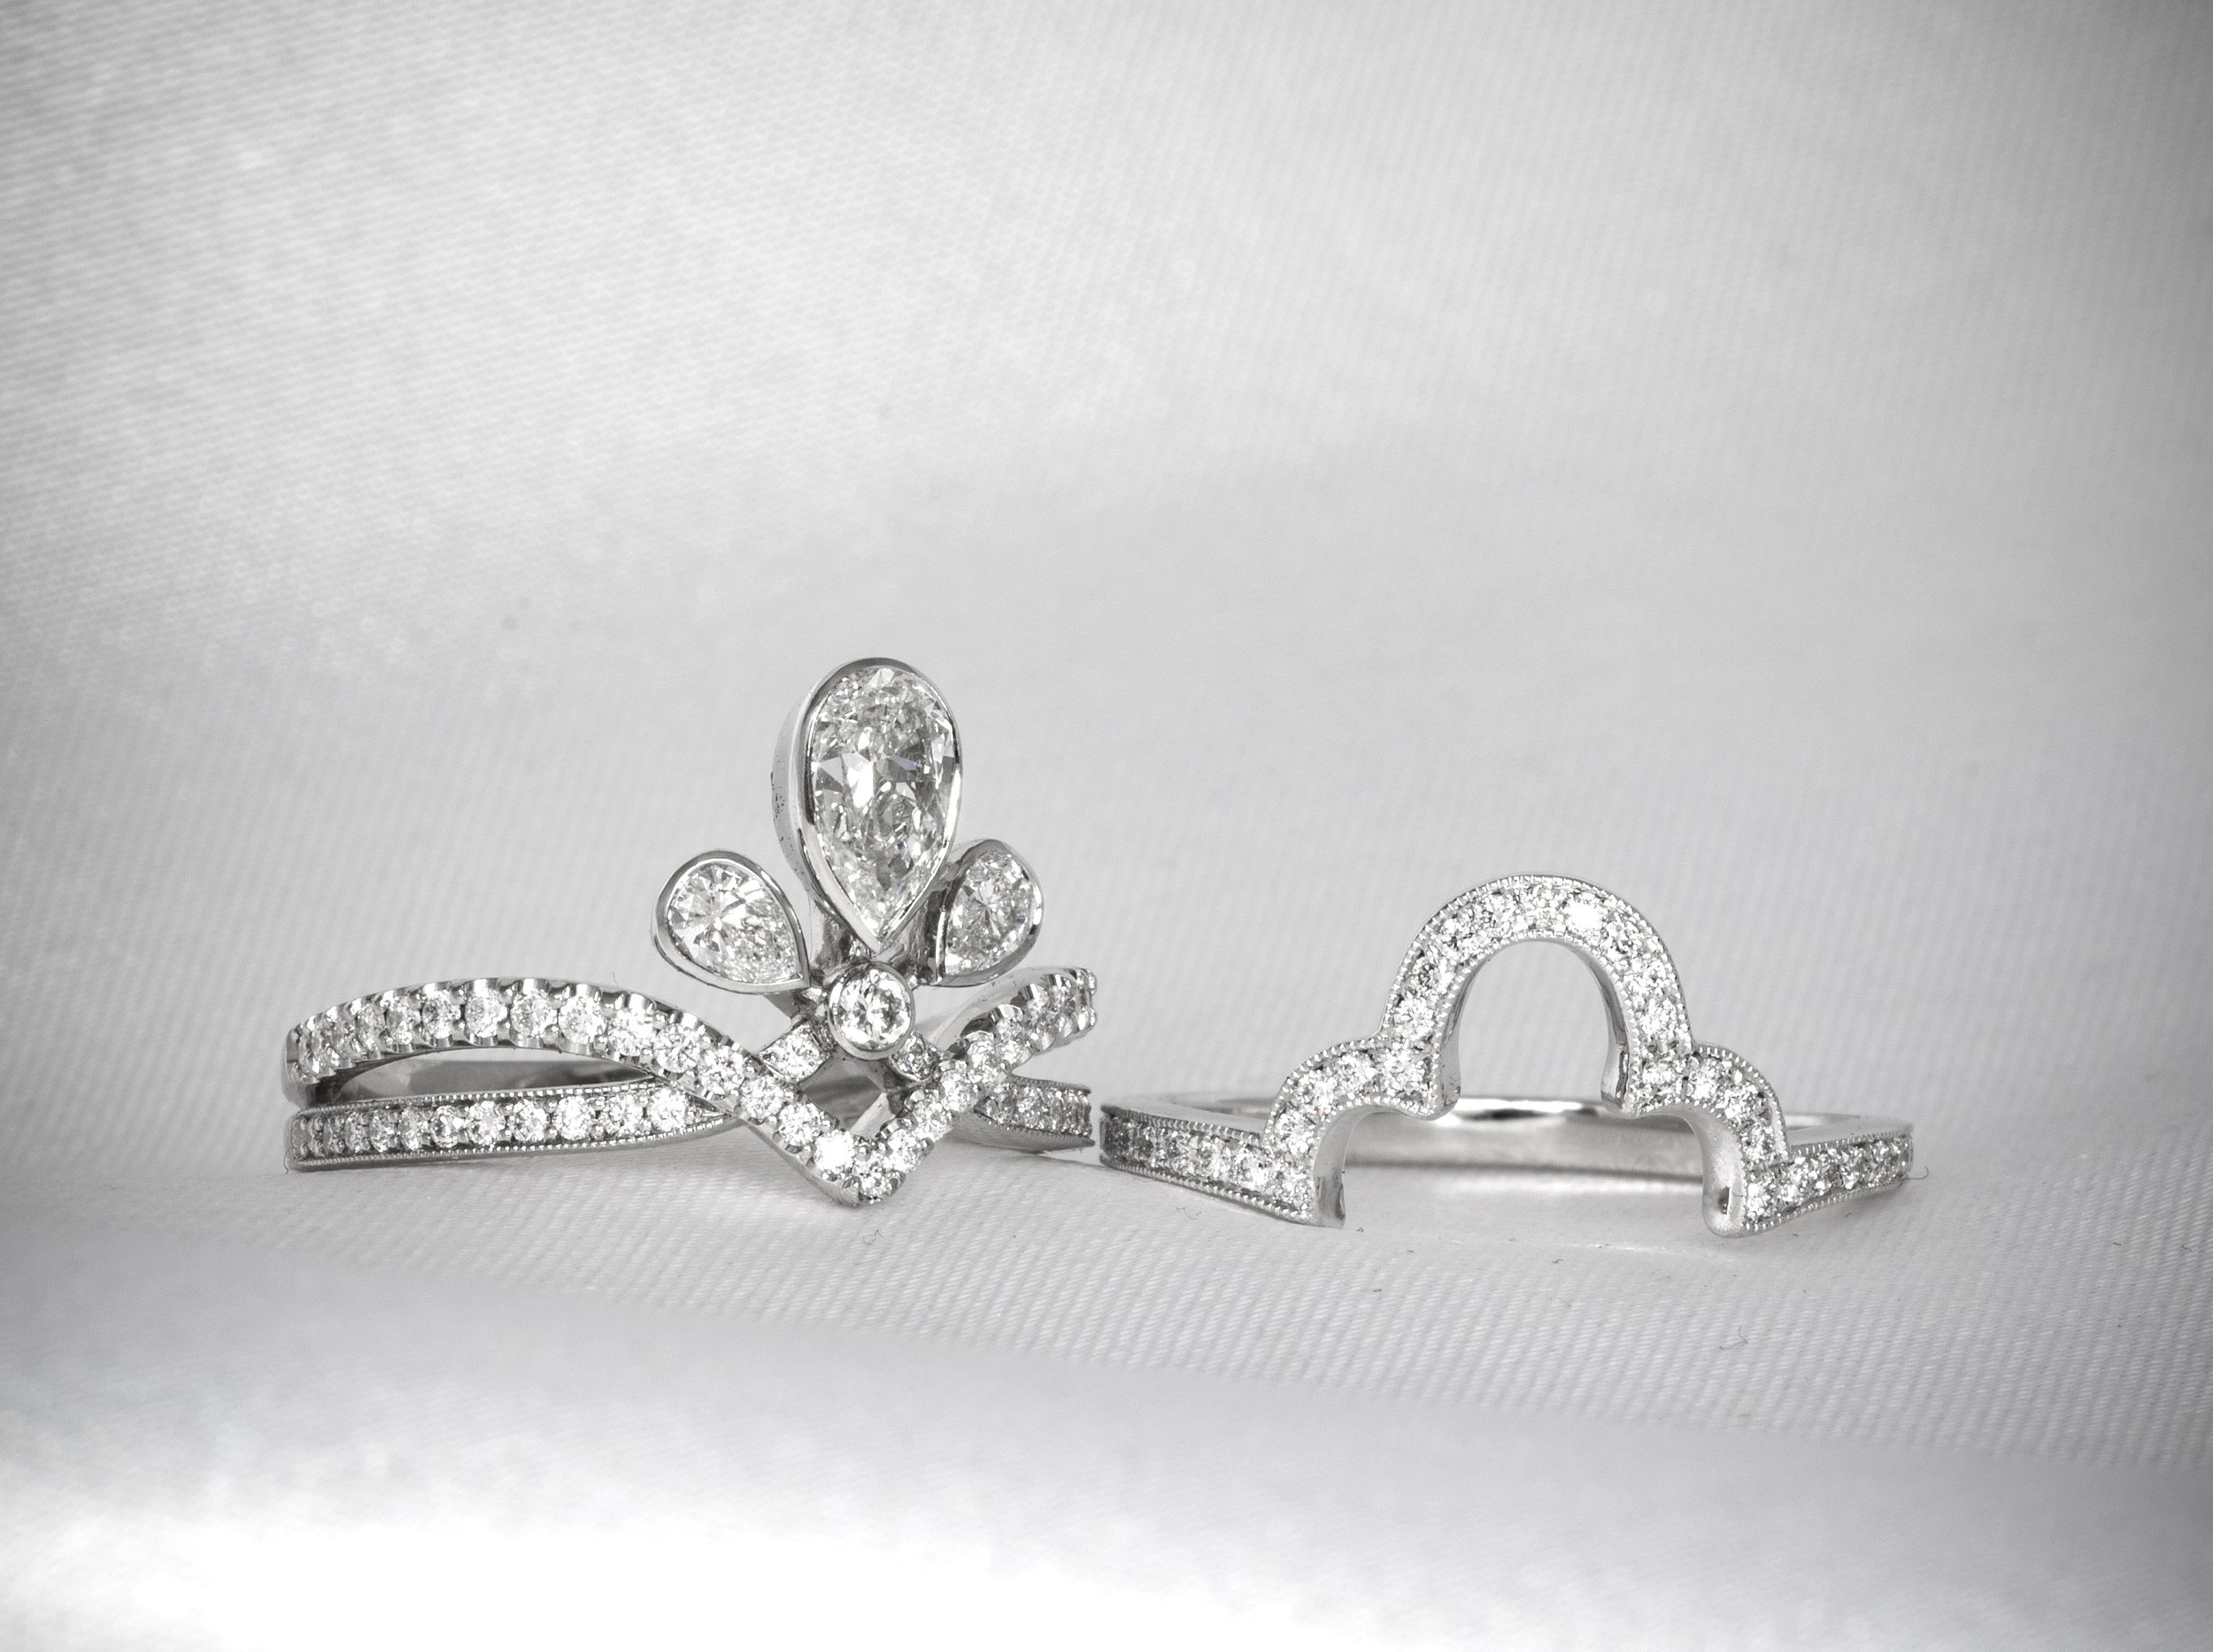 The platinum tiara ring with the bespoke fitted diamond shaped platinum and diamond band. Made in Chichester, England.